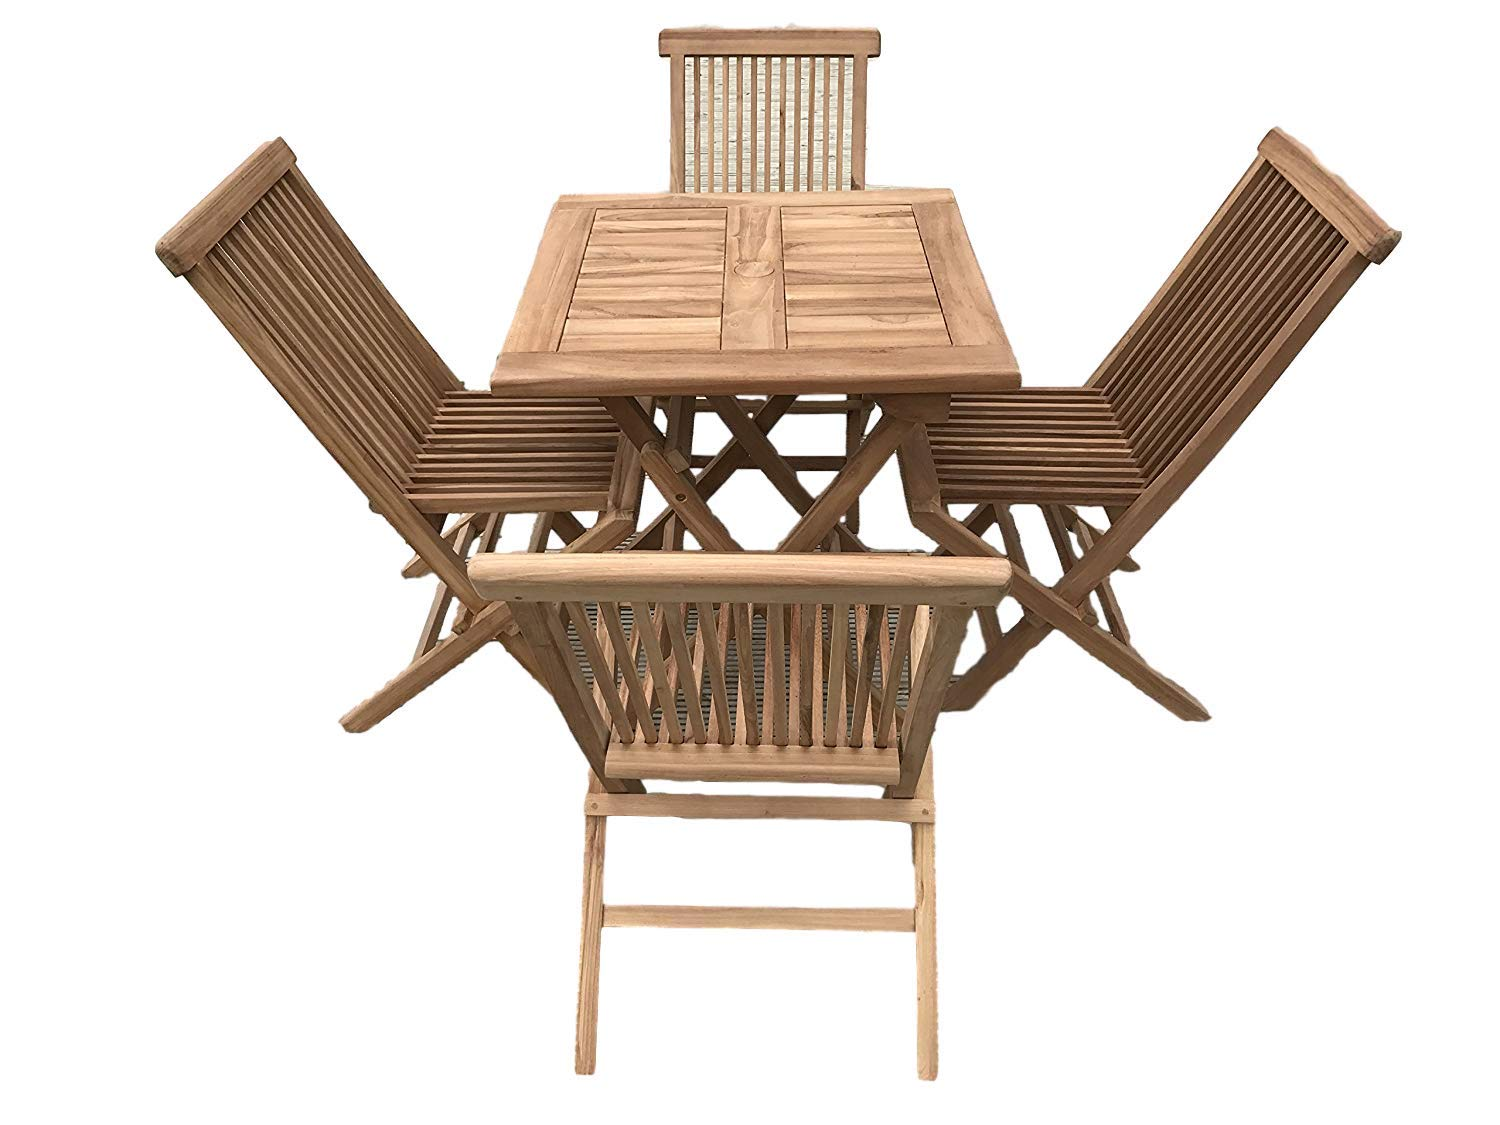 c84e67870cb Patio Essentials Malvern 4 Seater Garden Set - Solid Teak 70cm   2.3ft  Square Folding Bistro Table withFolding Chairs  Amazon.co.uk  Garden    Outdoors